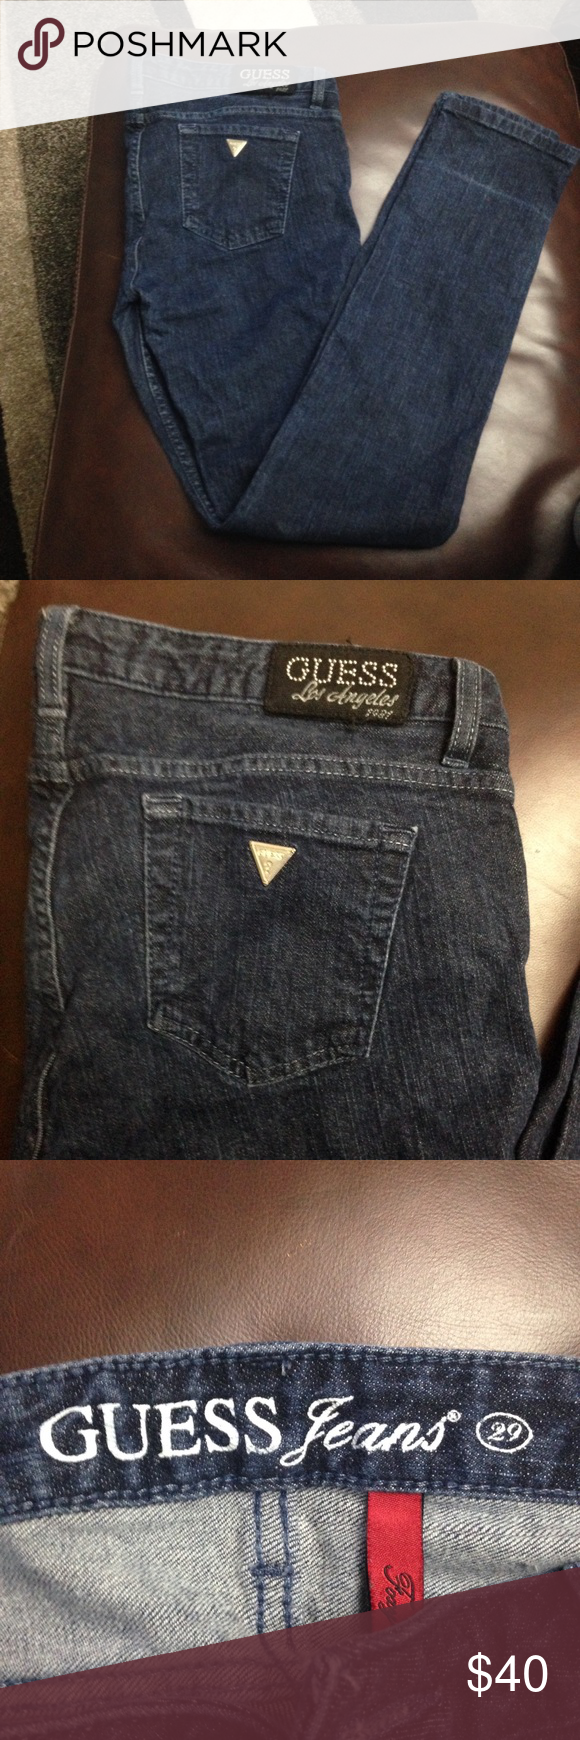 Guess jeans Gently used straight leg guess jeans size 29 Guess Jeans Straight Leg